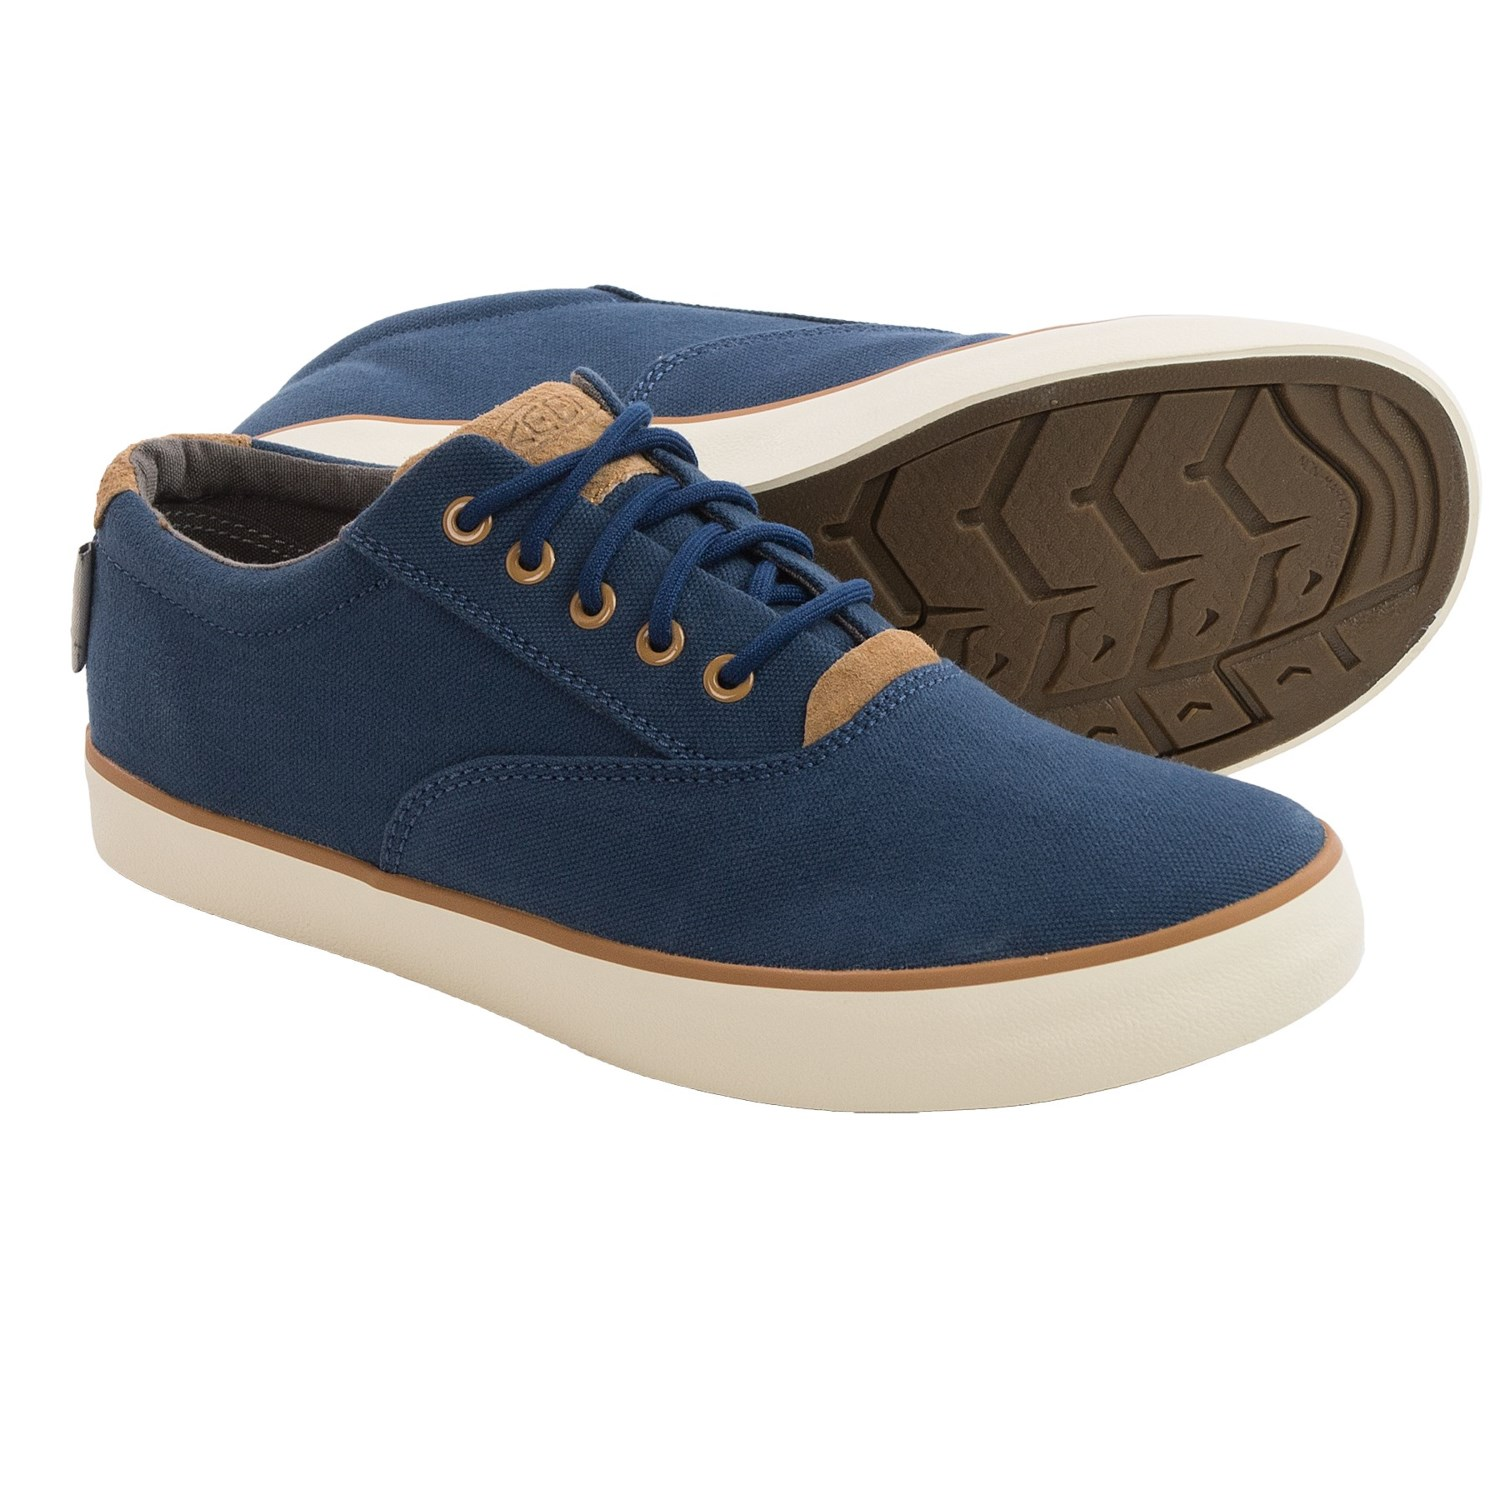 Keen Mens Canvas Shoes